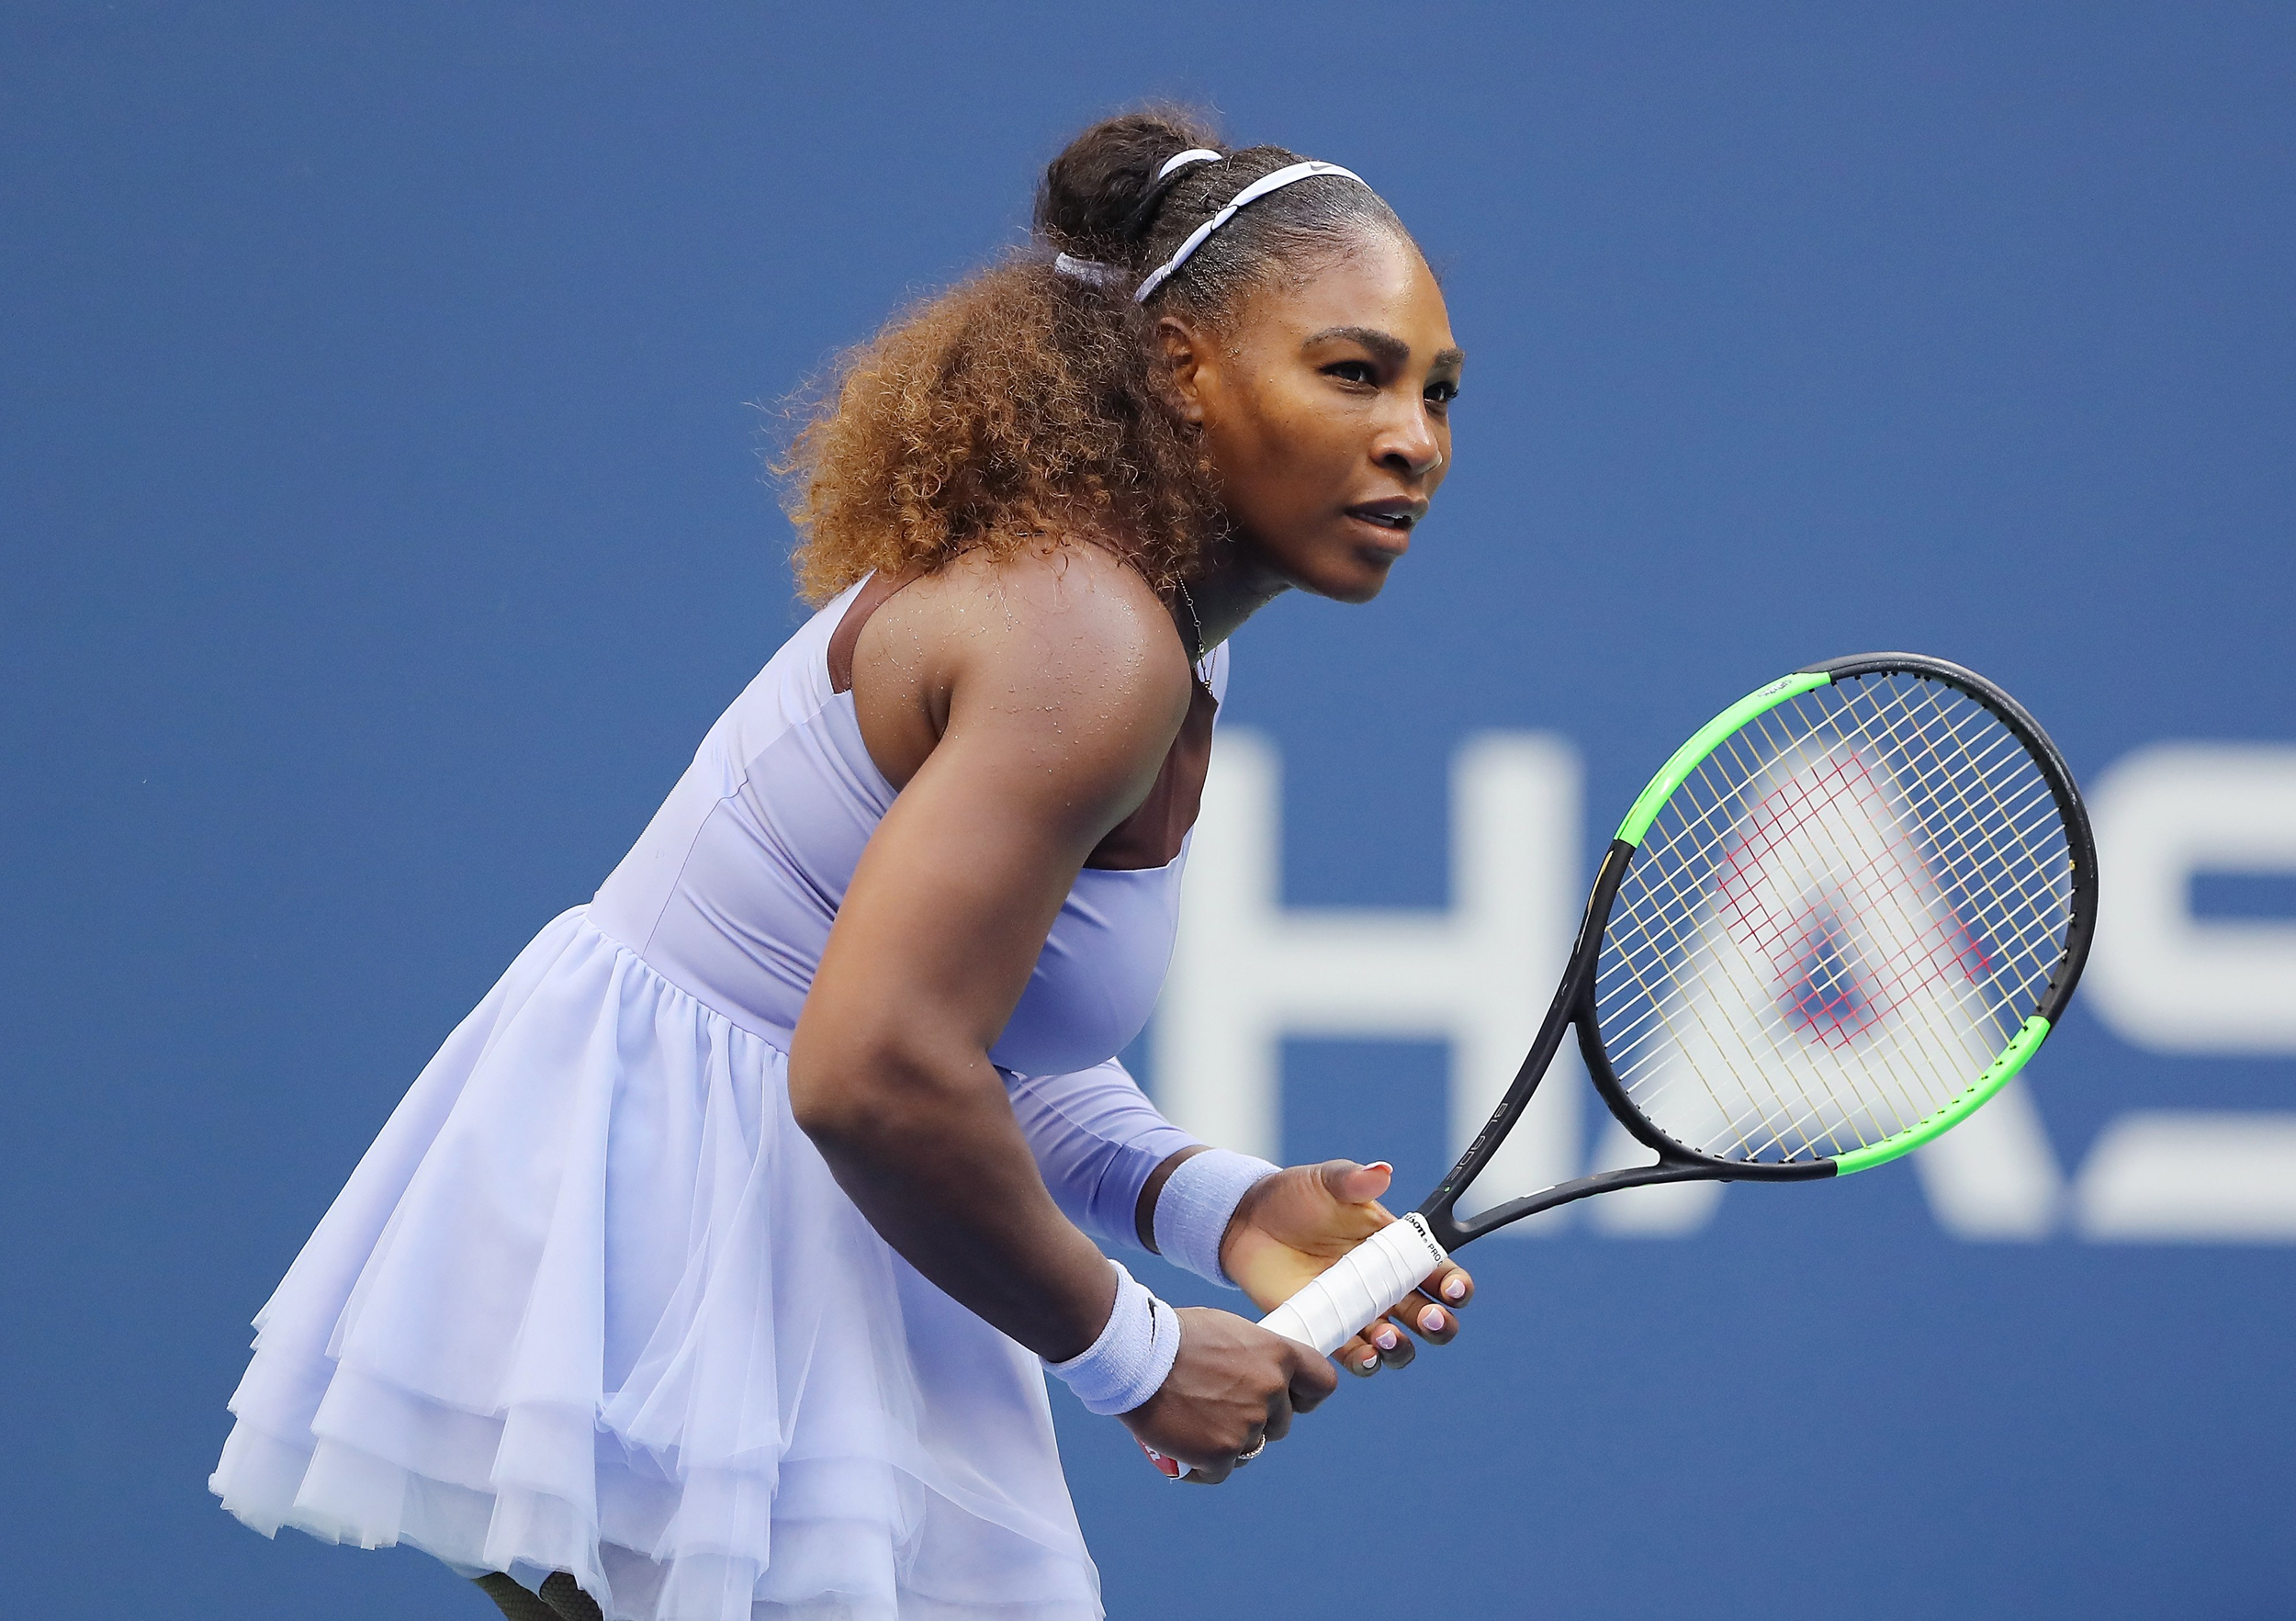 U S Open Finals Serena Williams Ability Made Us Take For Granted All That She Had To Overcome